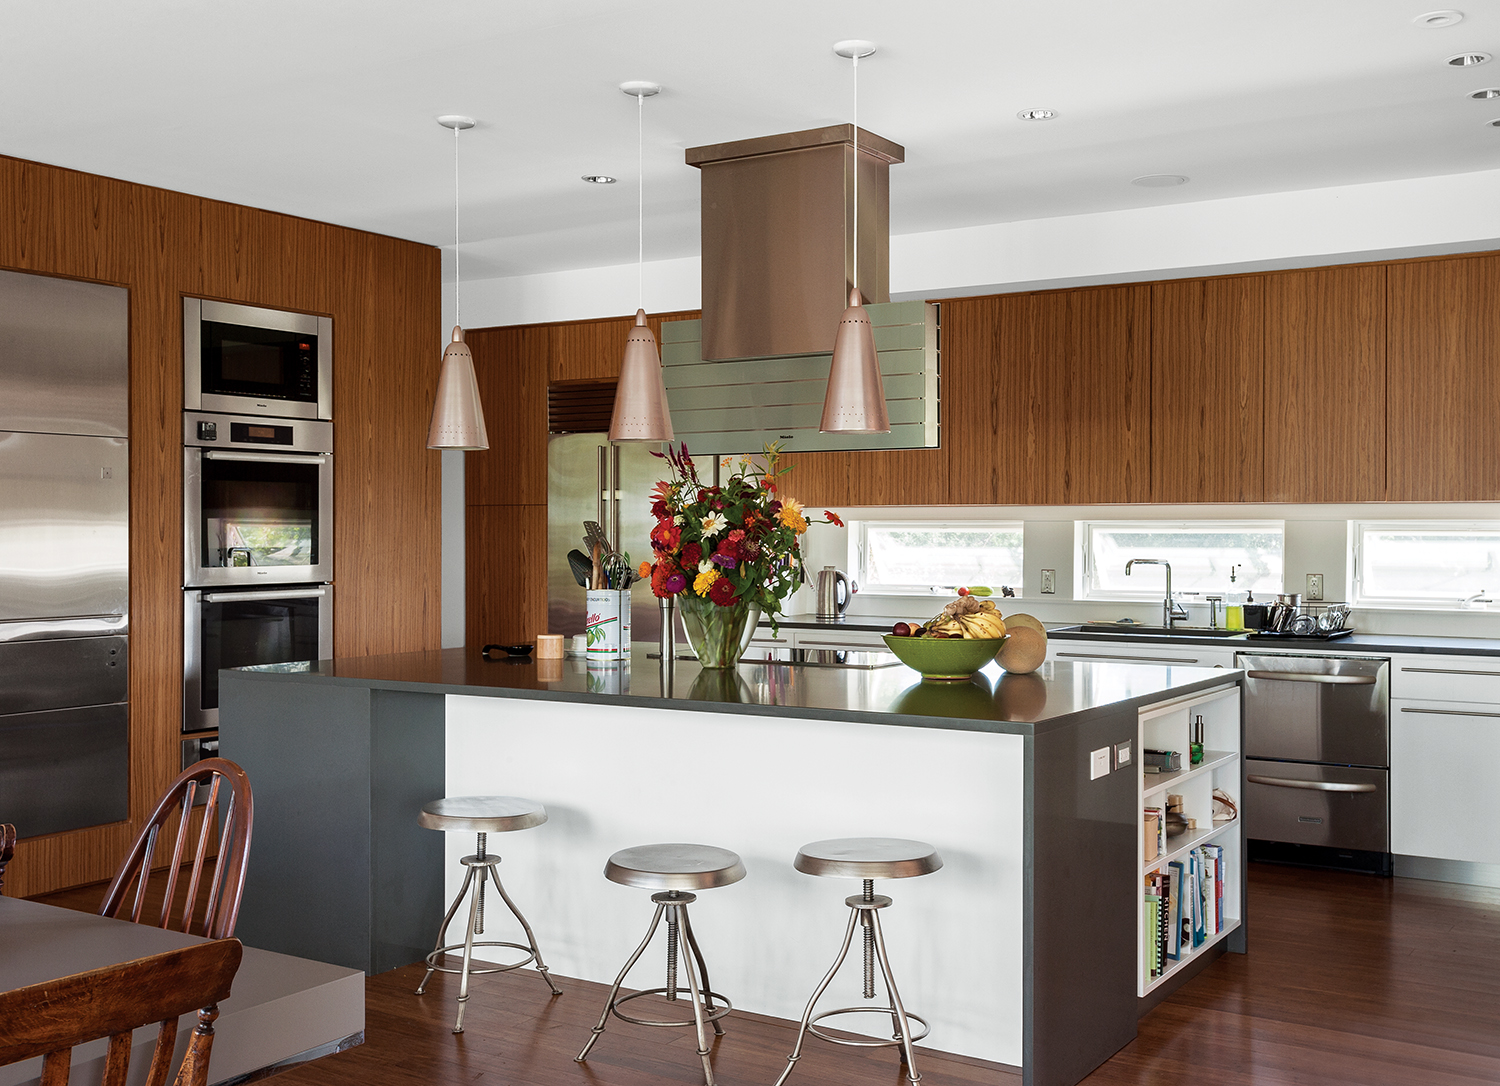 Fishers Island prefab interior kitchen